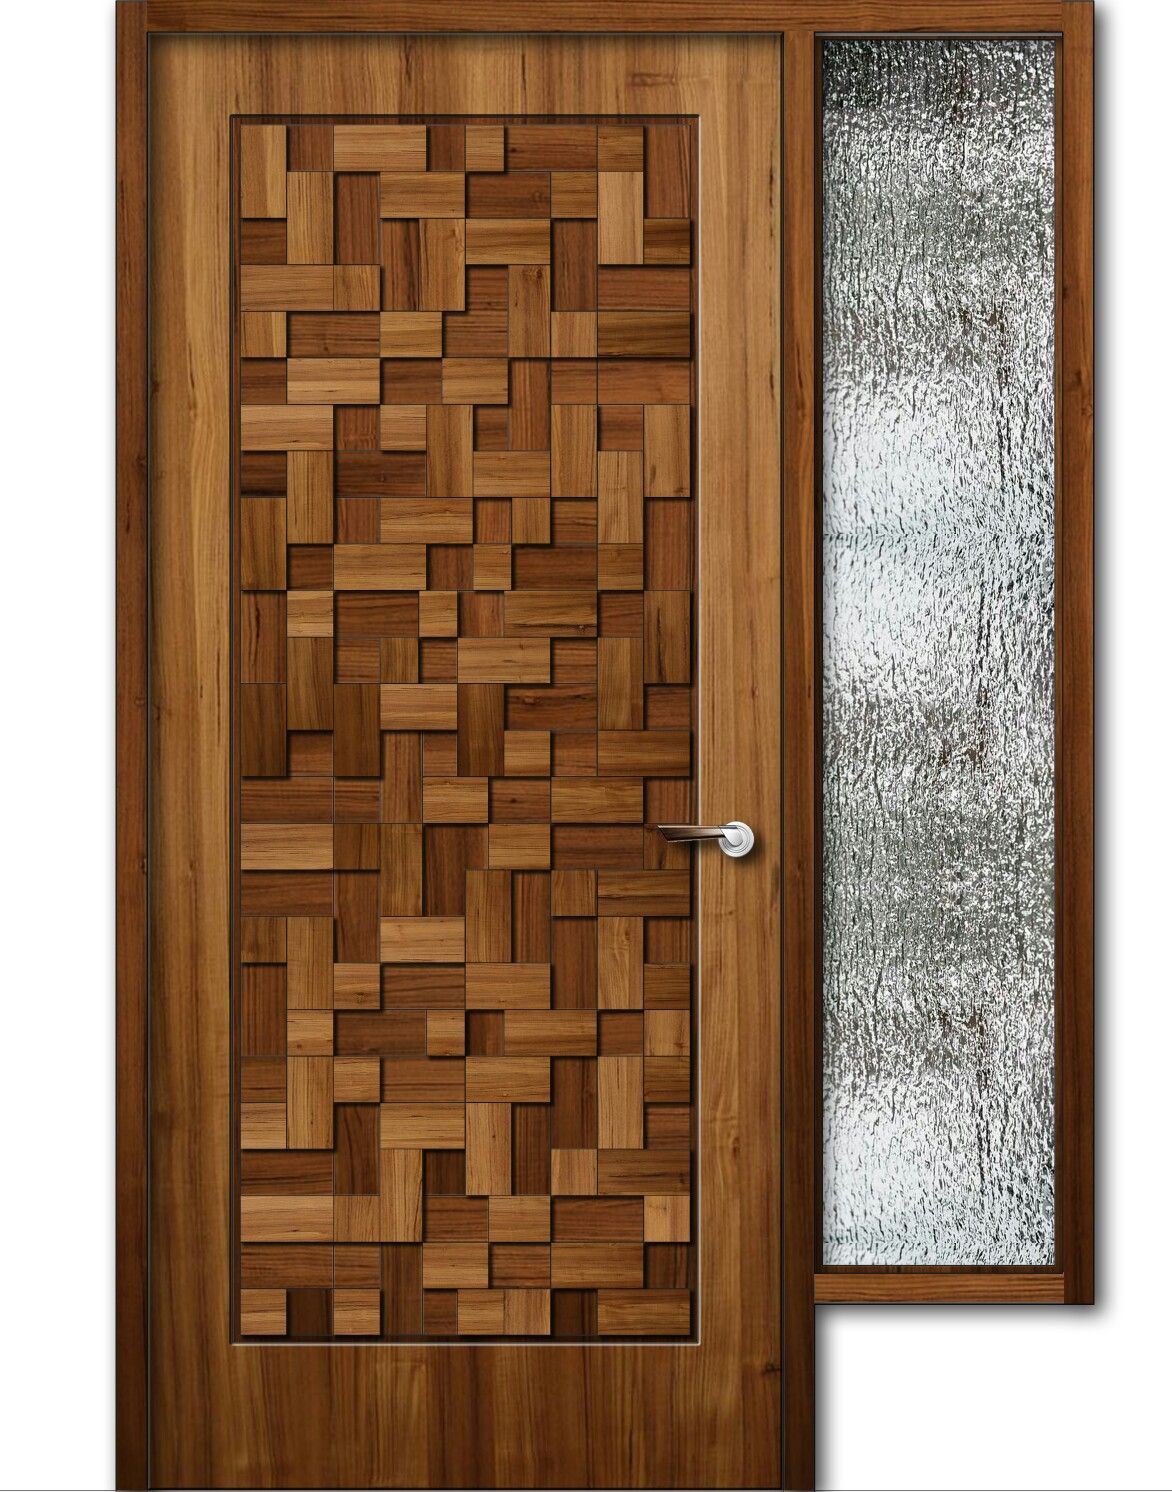 Teak wood finish wooden door with window 8feet height for Modern wooden main door design